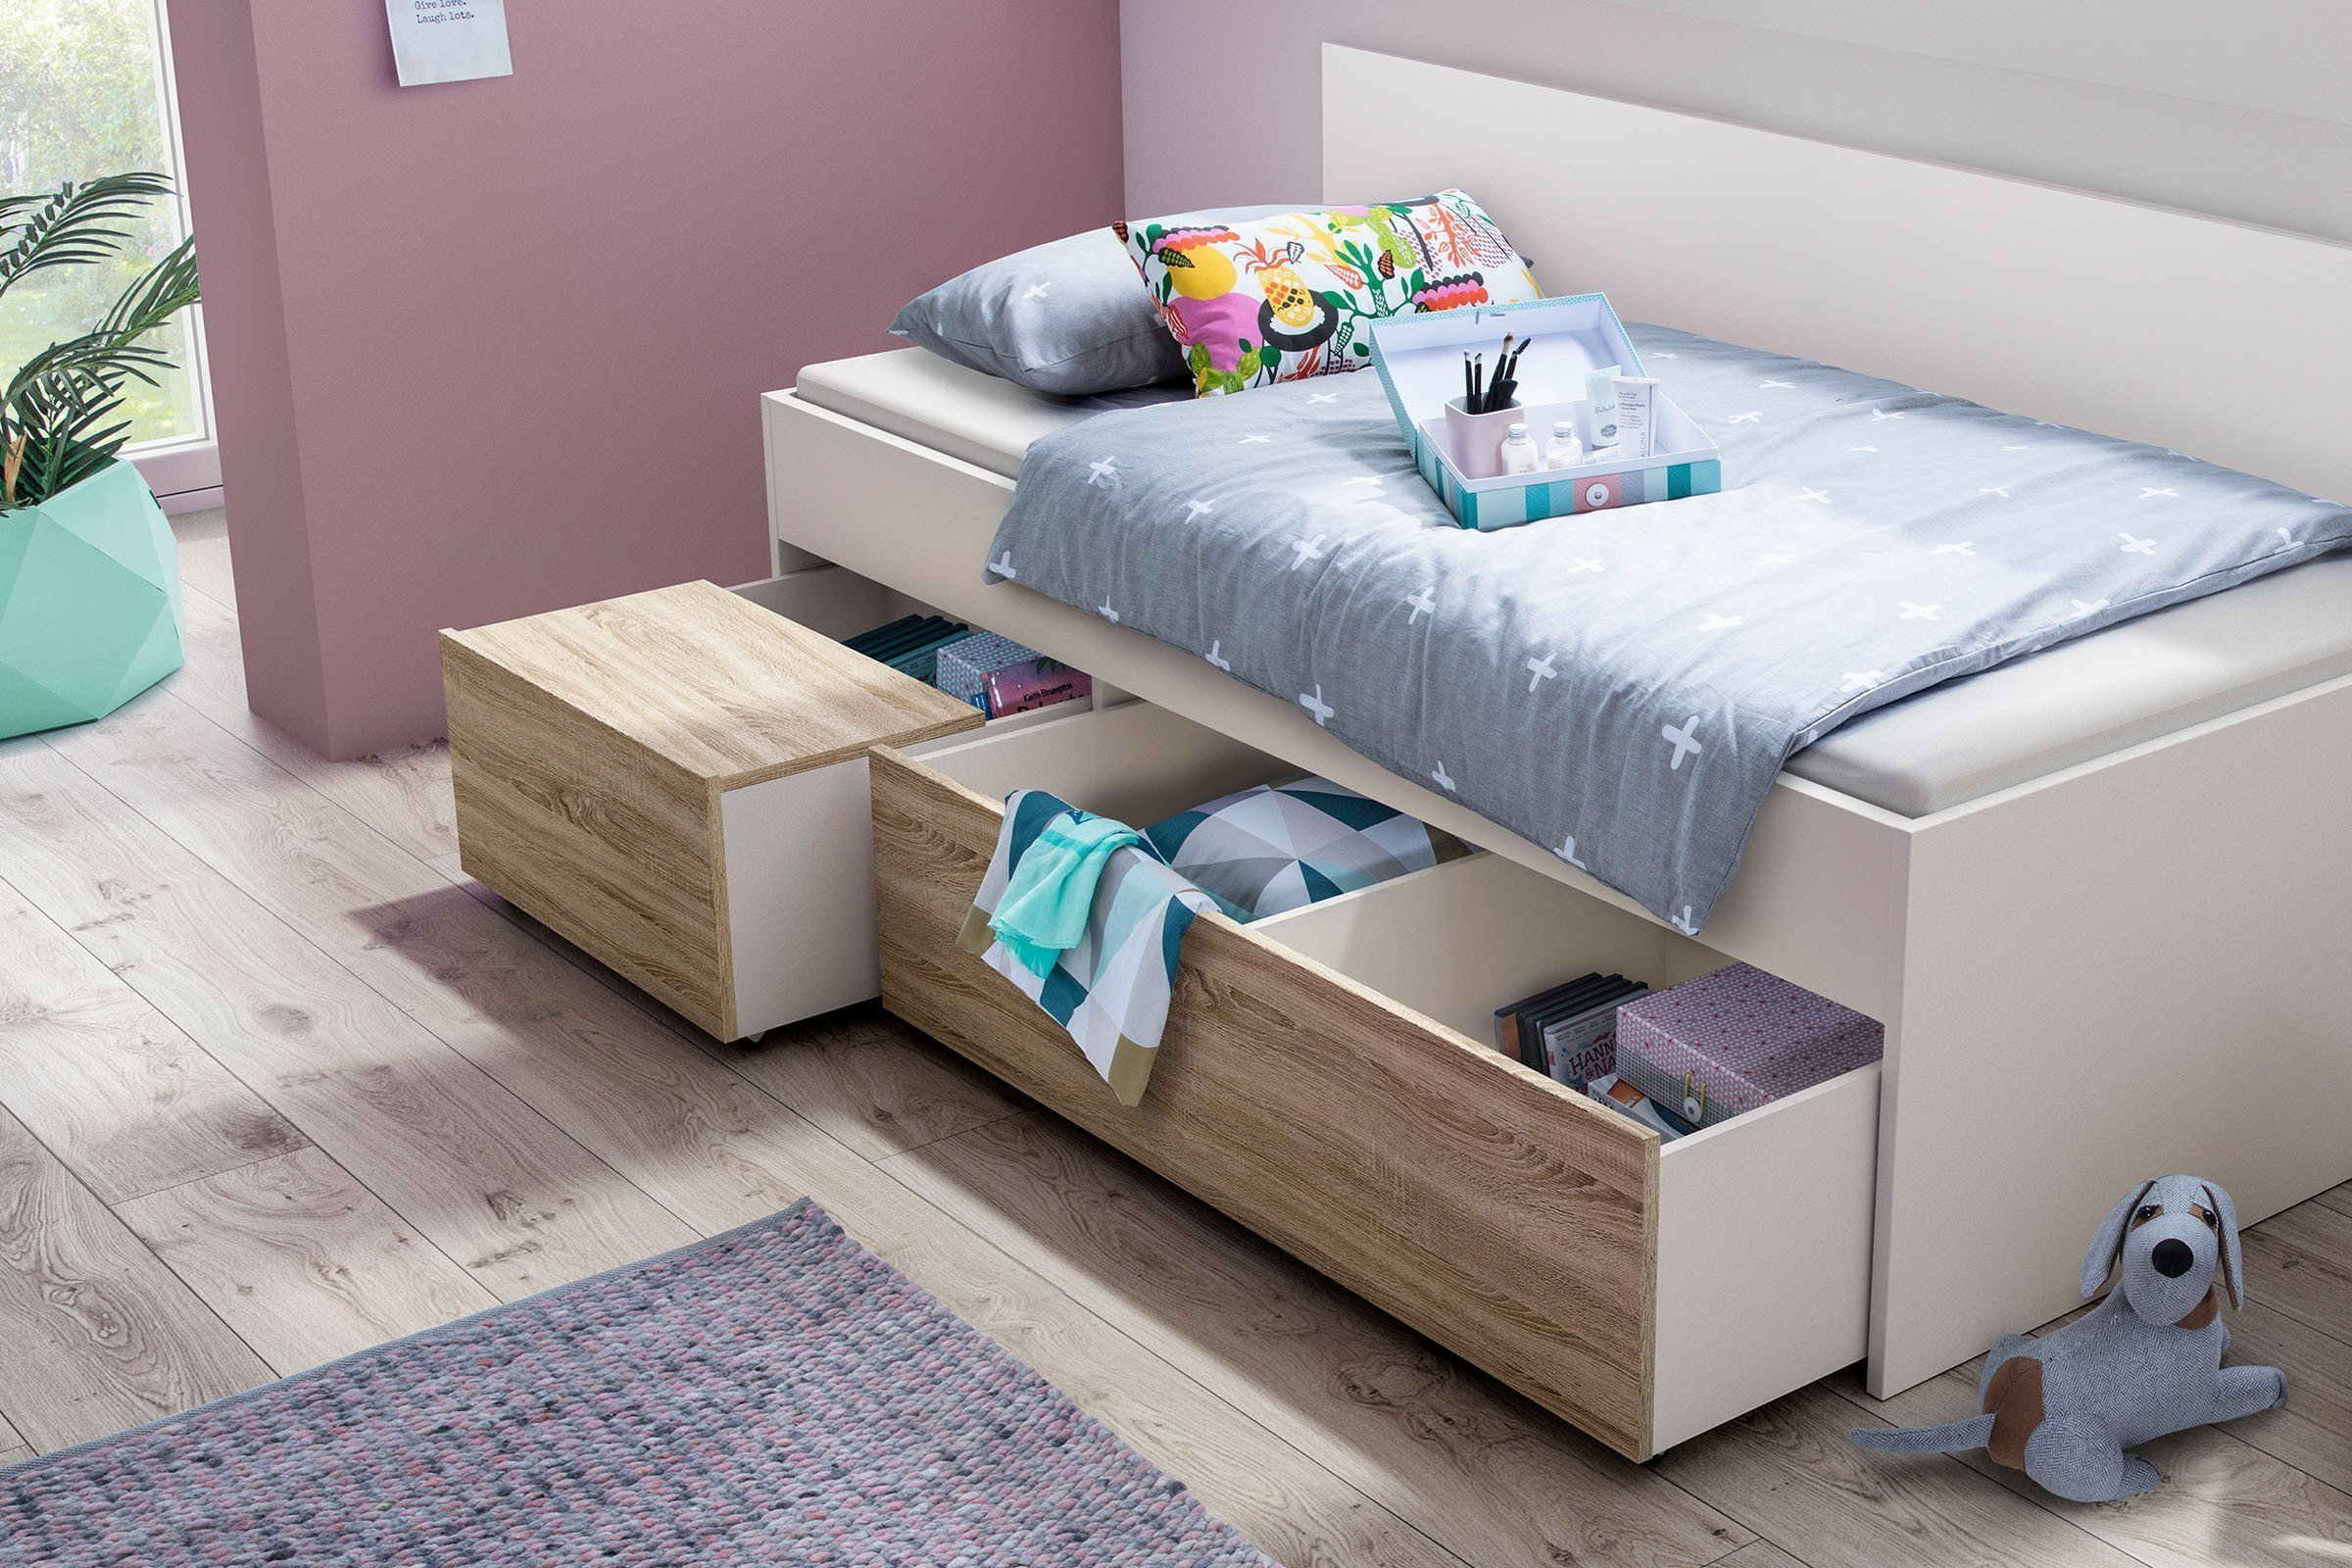 r hr bush pixxel bett mit funktion wei sonoma eiche m bel letz ihr online shop. Black Bedroom Furniture Sets. Home Design Ideas